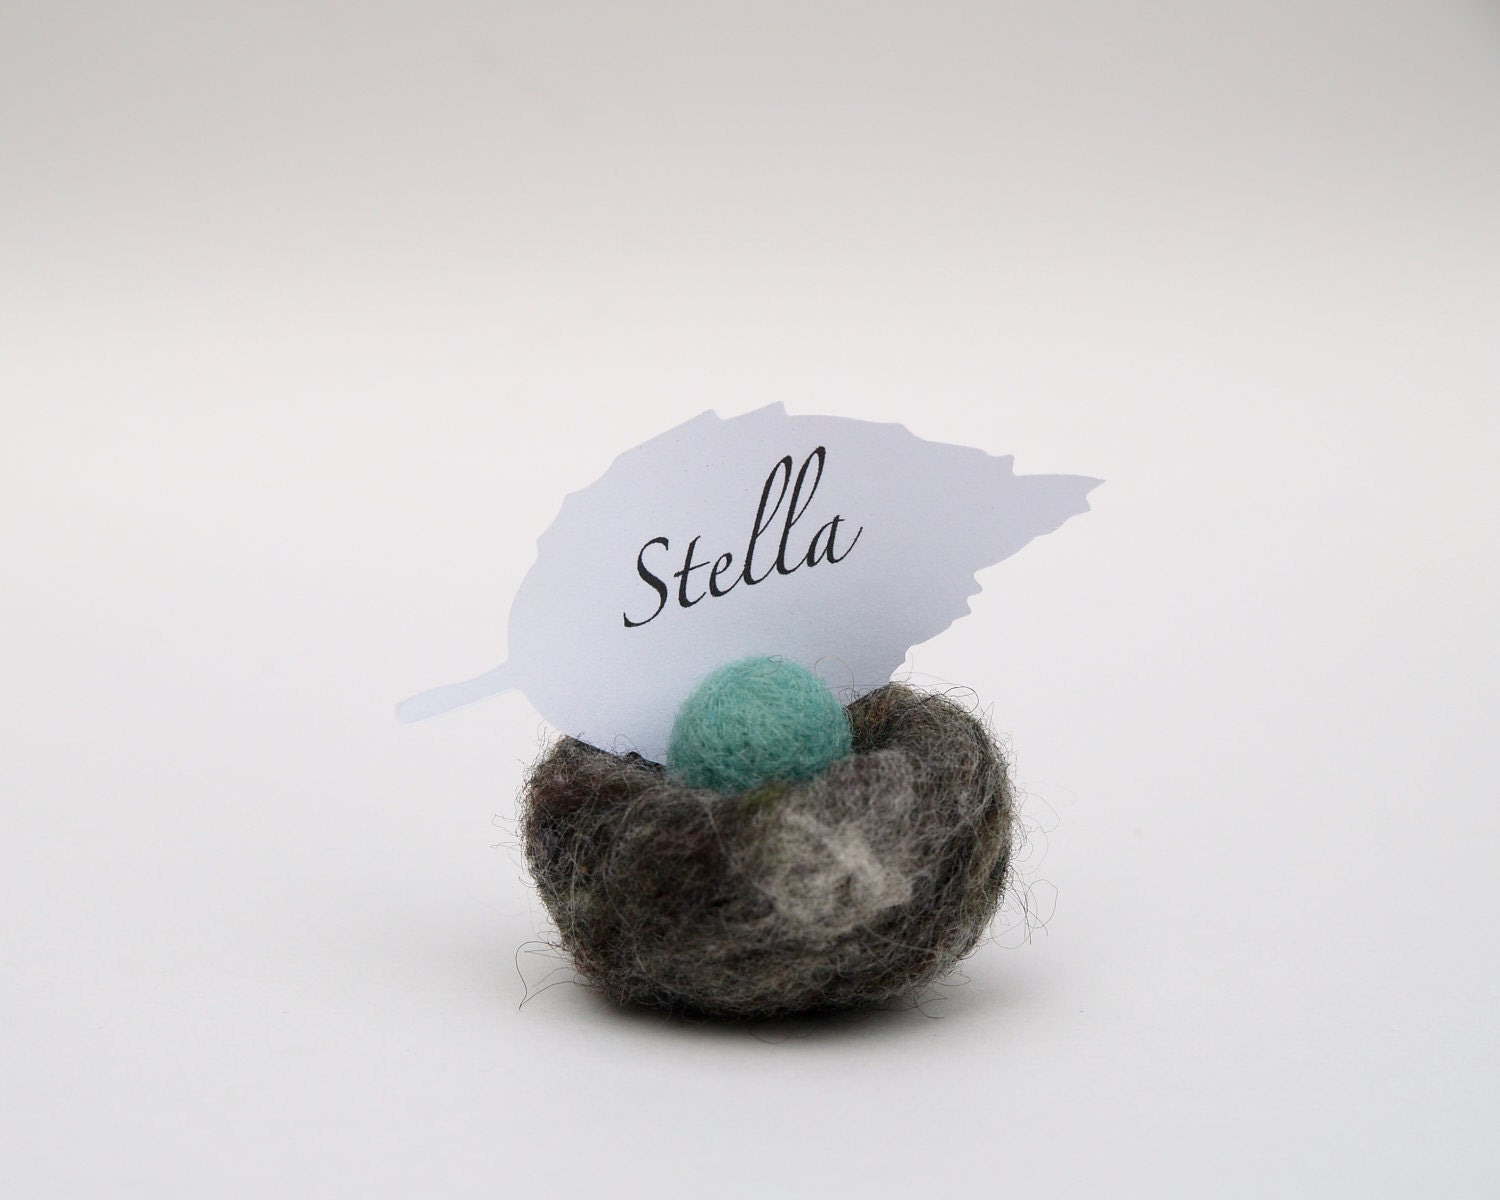 Woodland Nest Place Cards, Woolly Wedding Decoration, set of 5 turquoise robins blue egg in woolly nestteamt